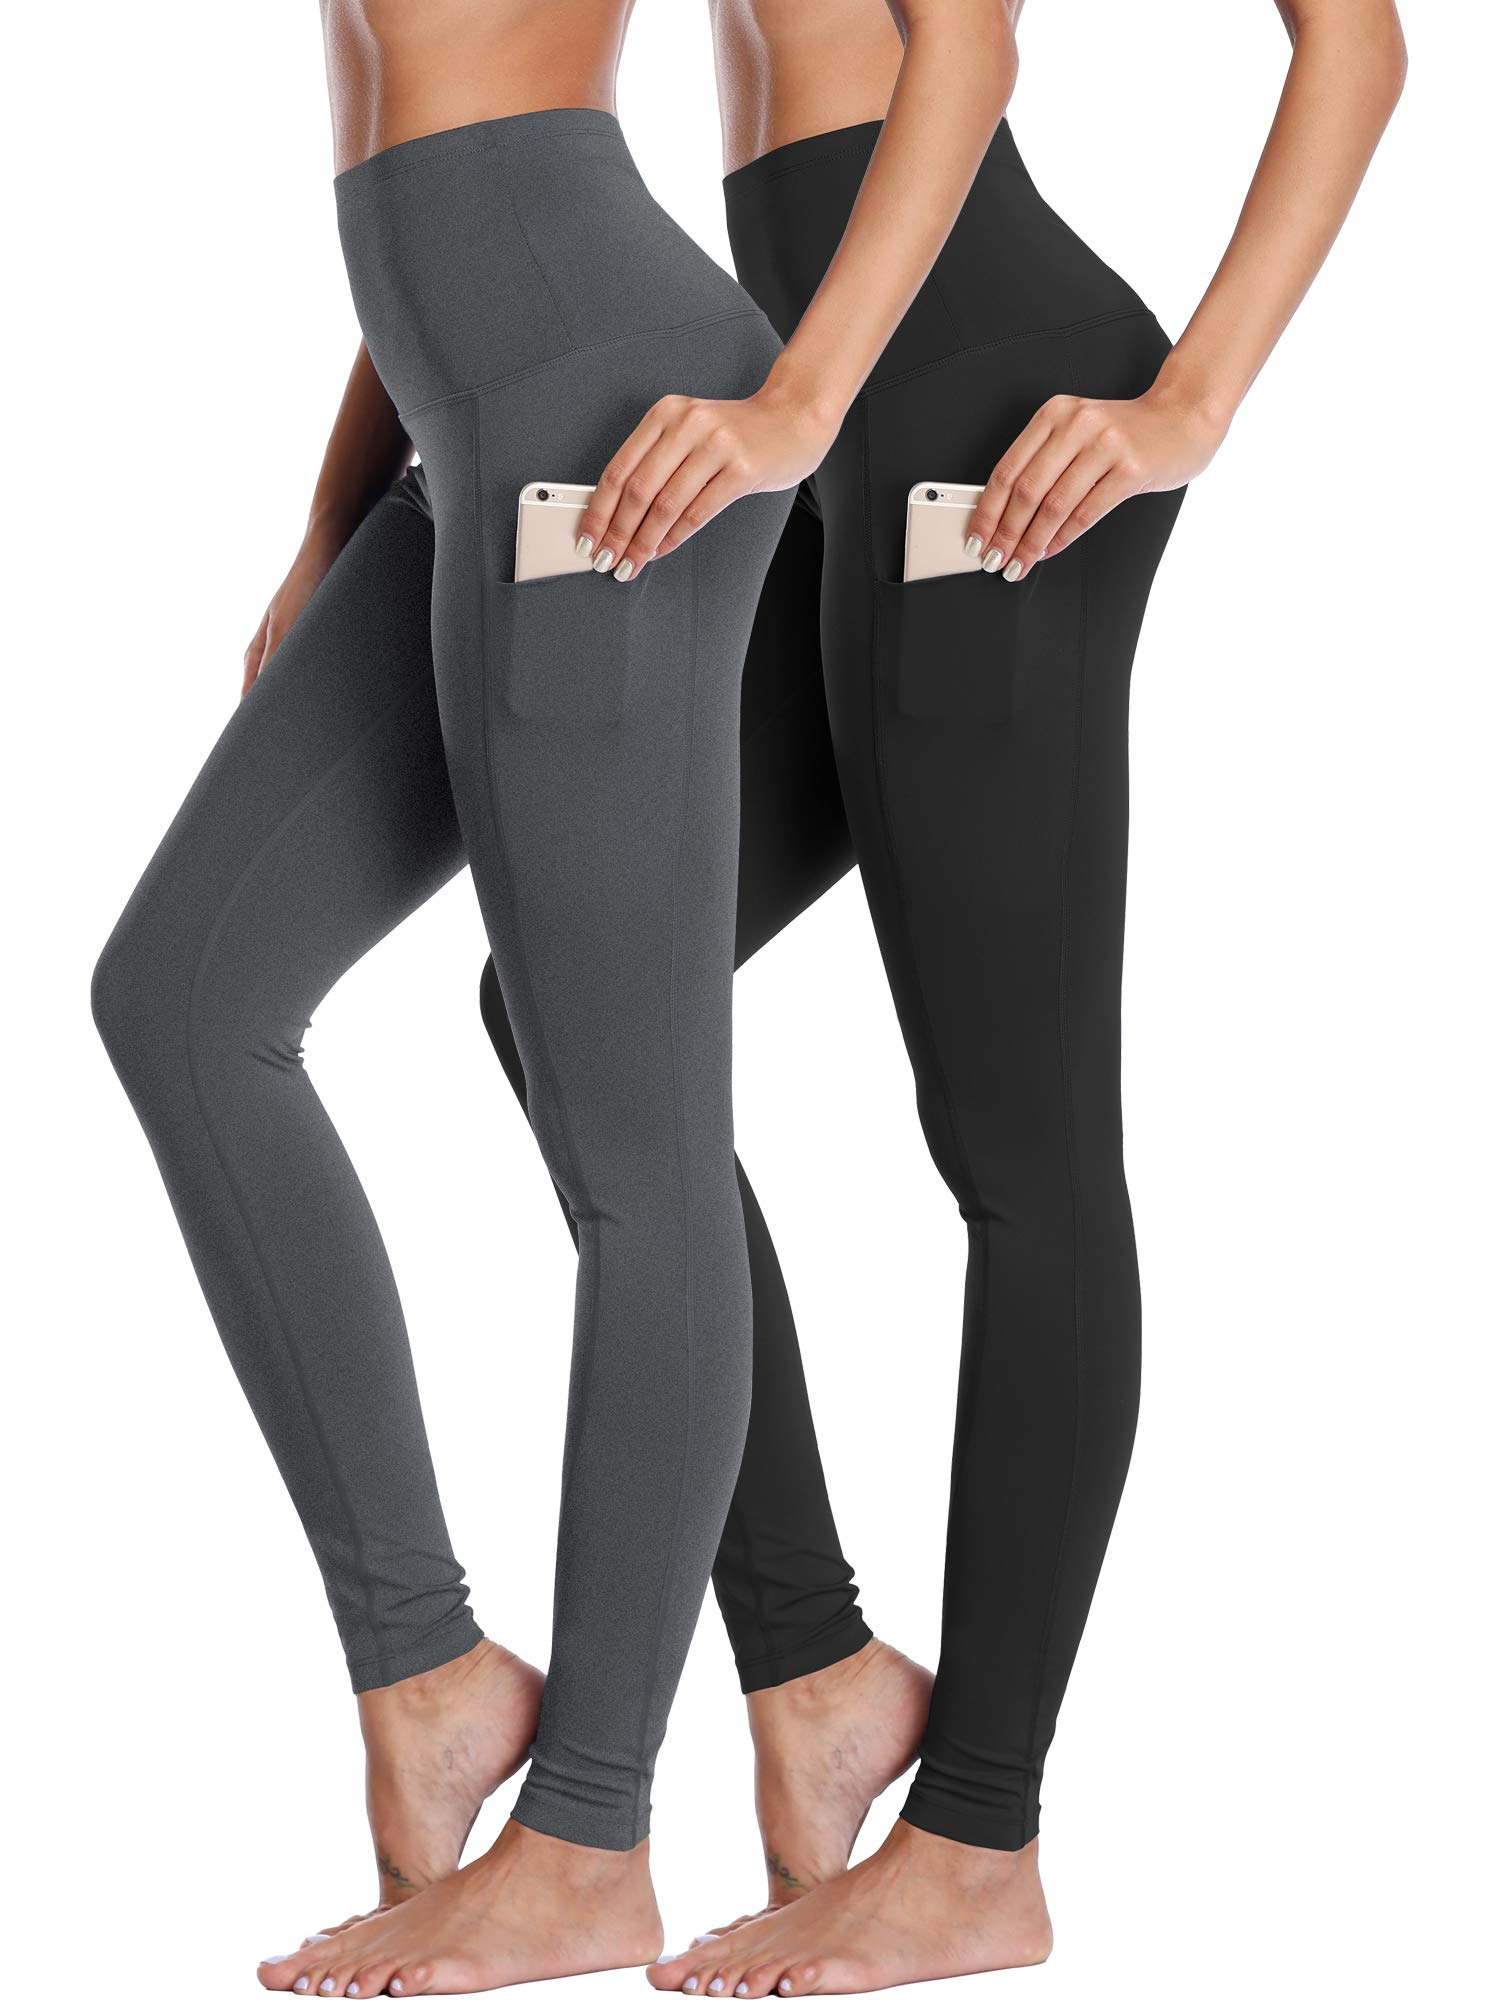 Neleus Women's 2 Pack Yoga Leggings Tummy Control Workout Yoga Pant,103,Black,Grey,S by Neleus